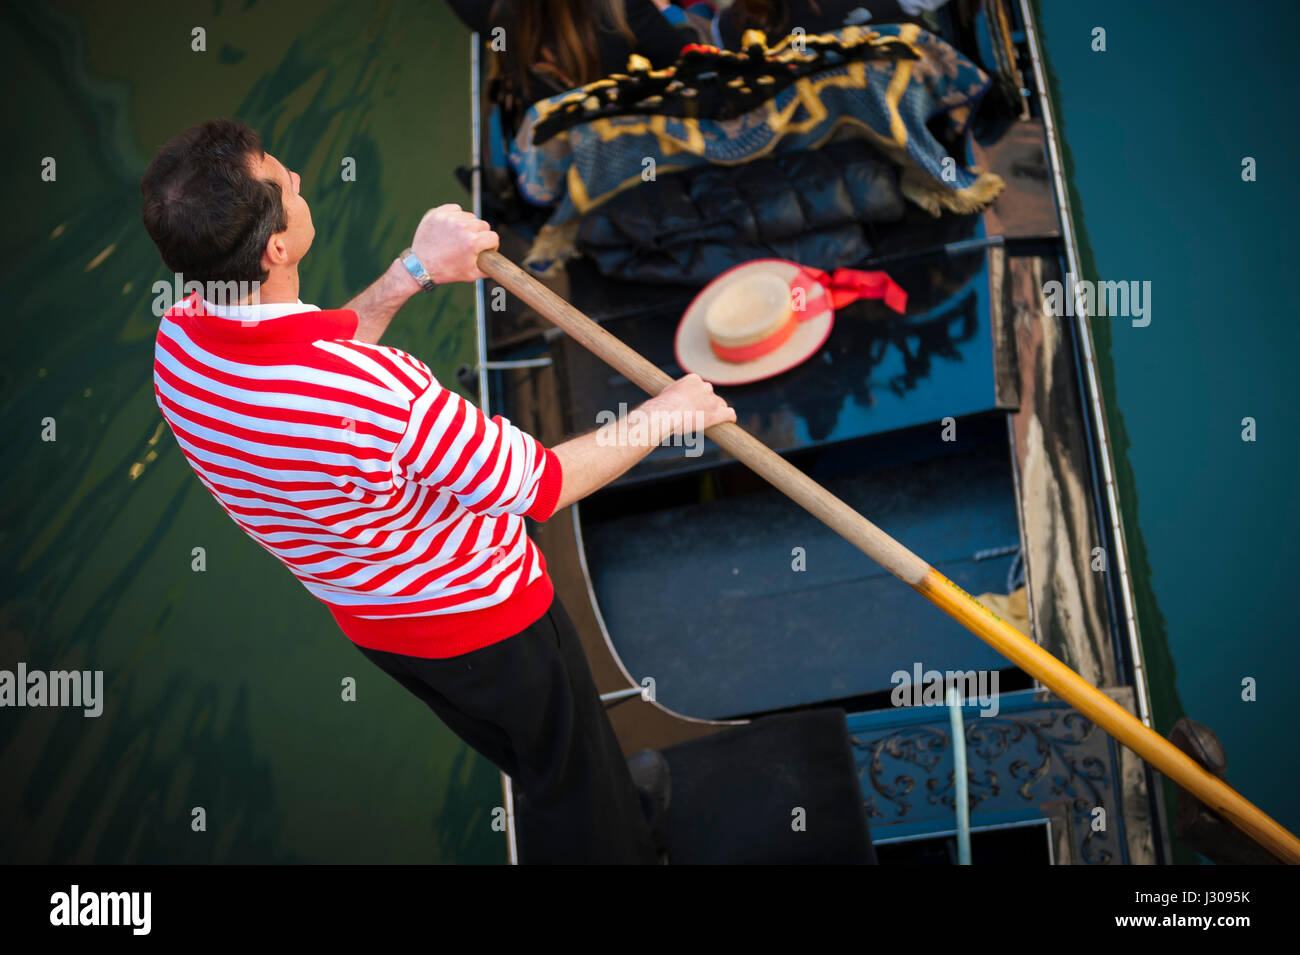 VENICE - APRIL 23, 2013: Venetian gondolier in traditional red and white striped shirt punts his gondola under a - Stock Image